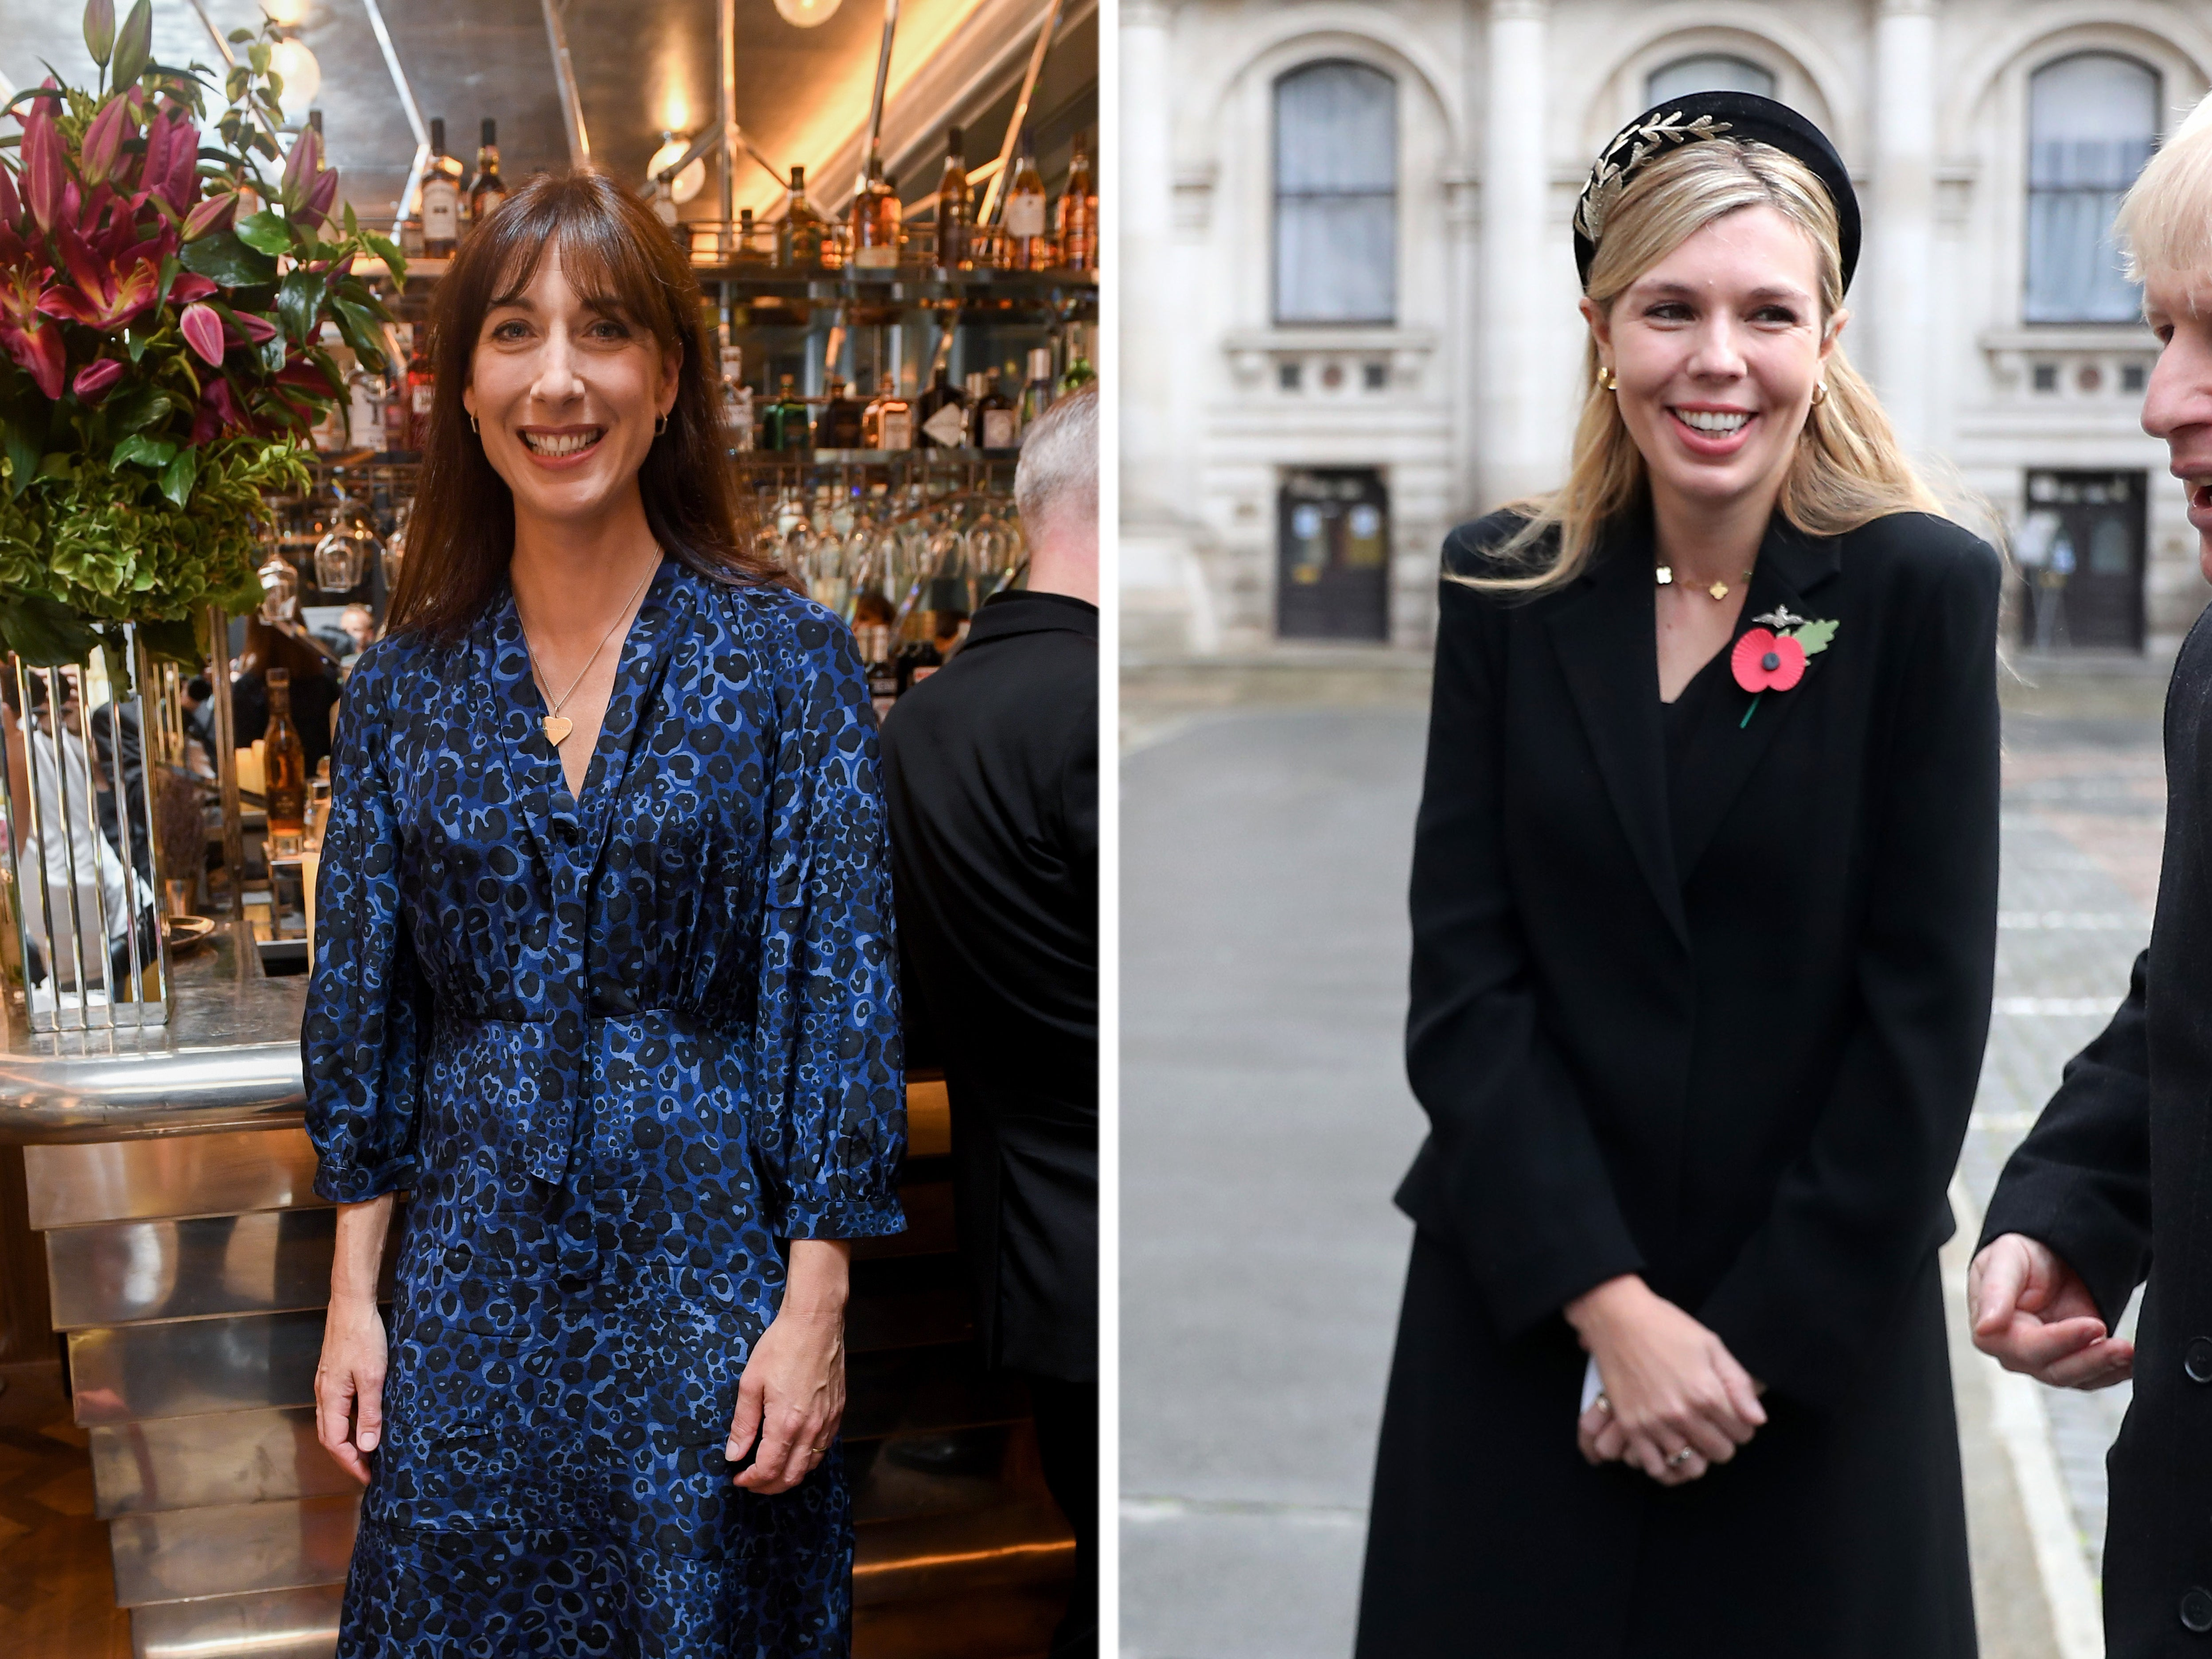 Samantha Cameron says suggestions Carrie Symonds influences PM's decisions are 'sexist'